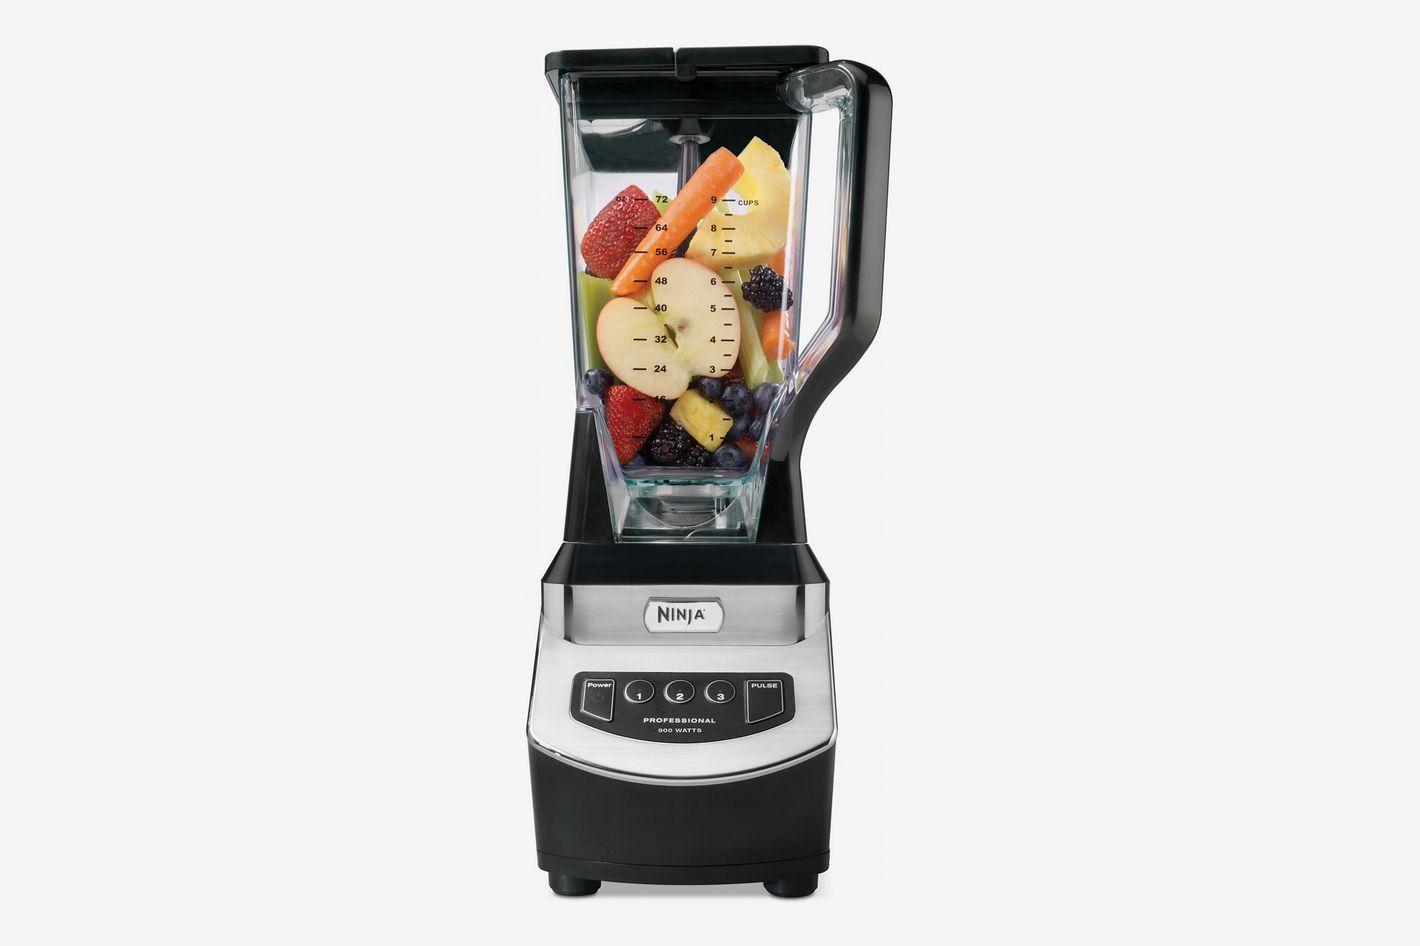 Ninja NJ600 Professional Blender